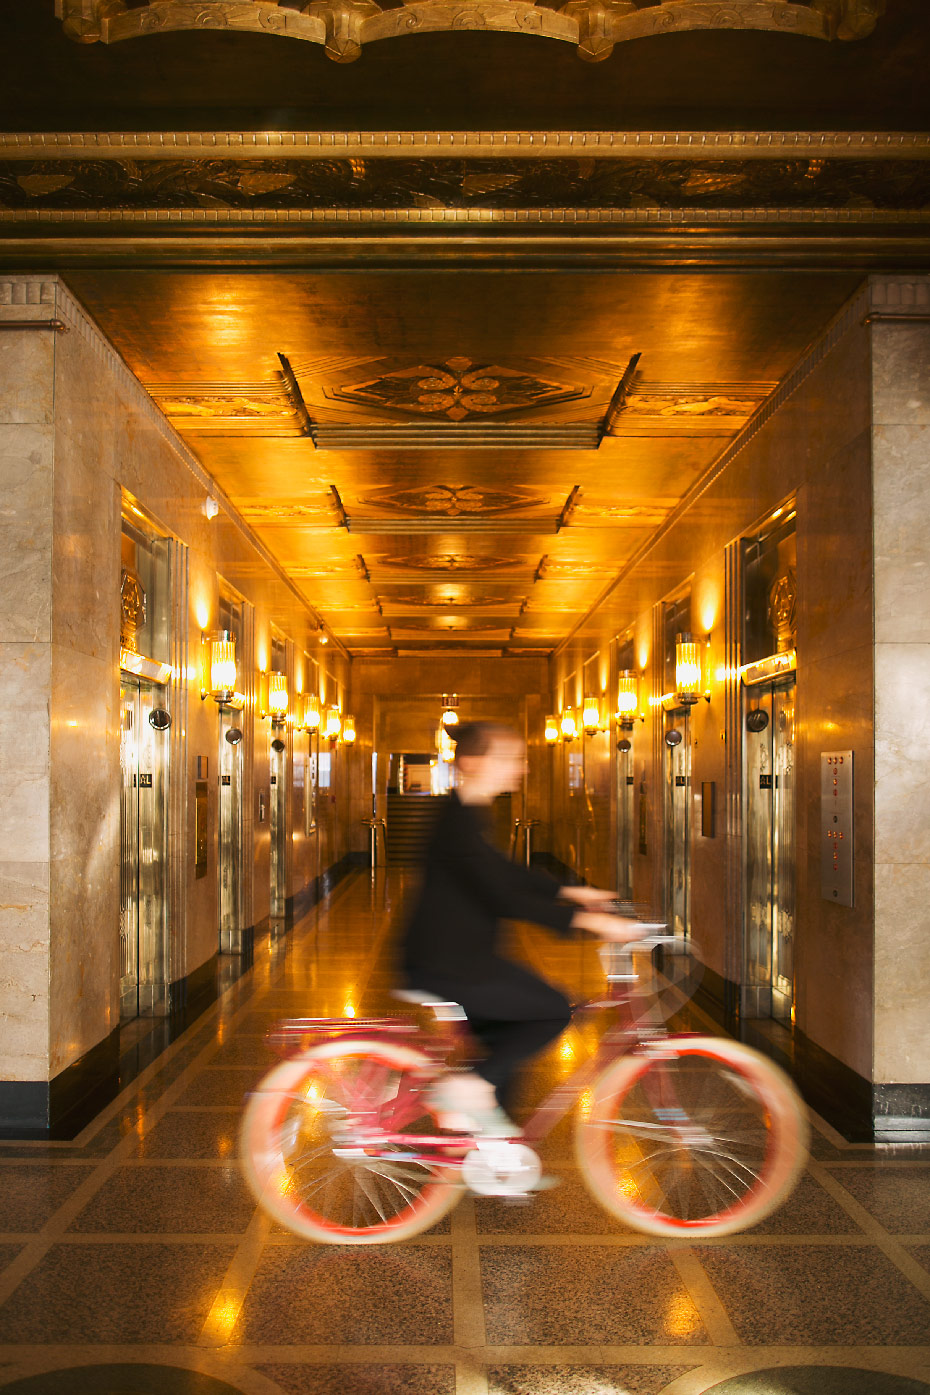 Stacey Van Berkel Photography I Cycling in the gilded lobby of the Kimpton Cardinal Hotel I Inspired the design of the Empire State Building I Winston-Salem, North Carolina